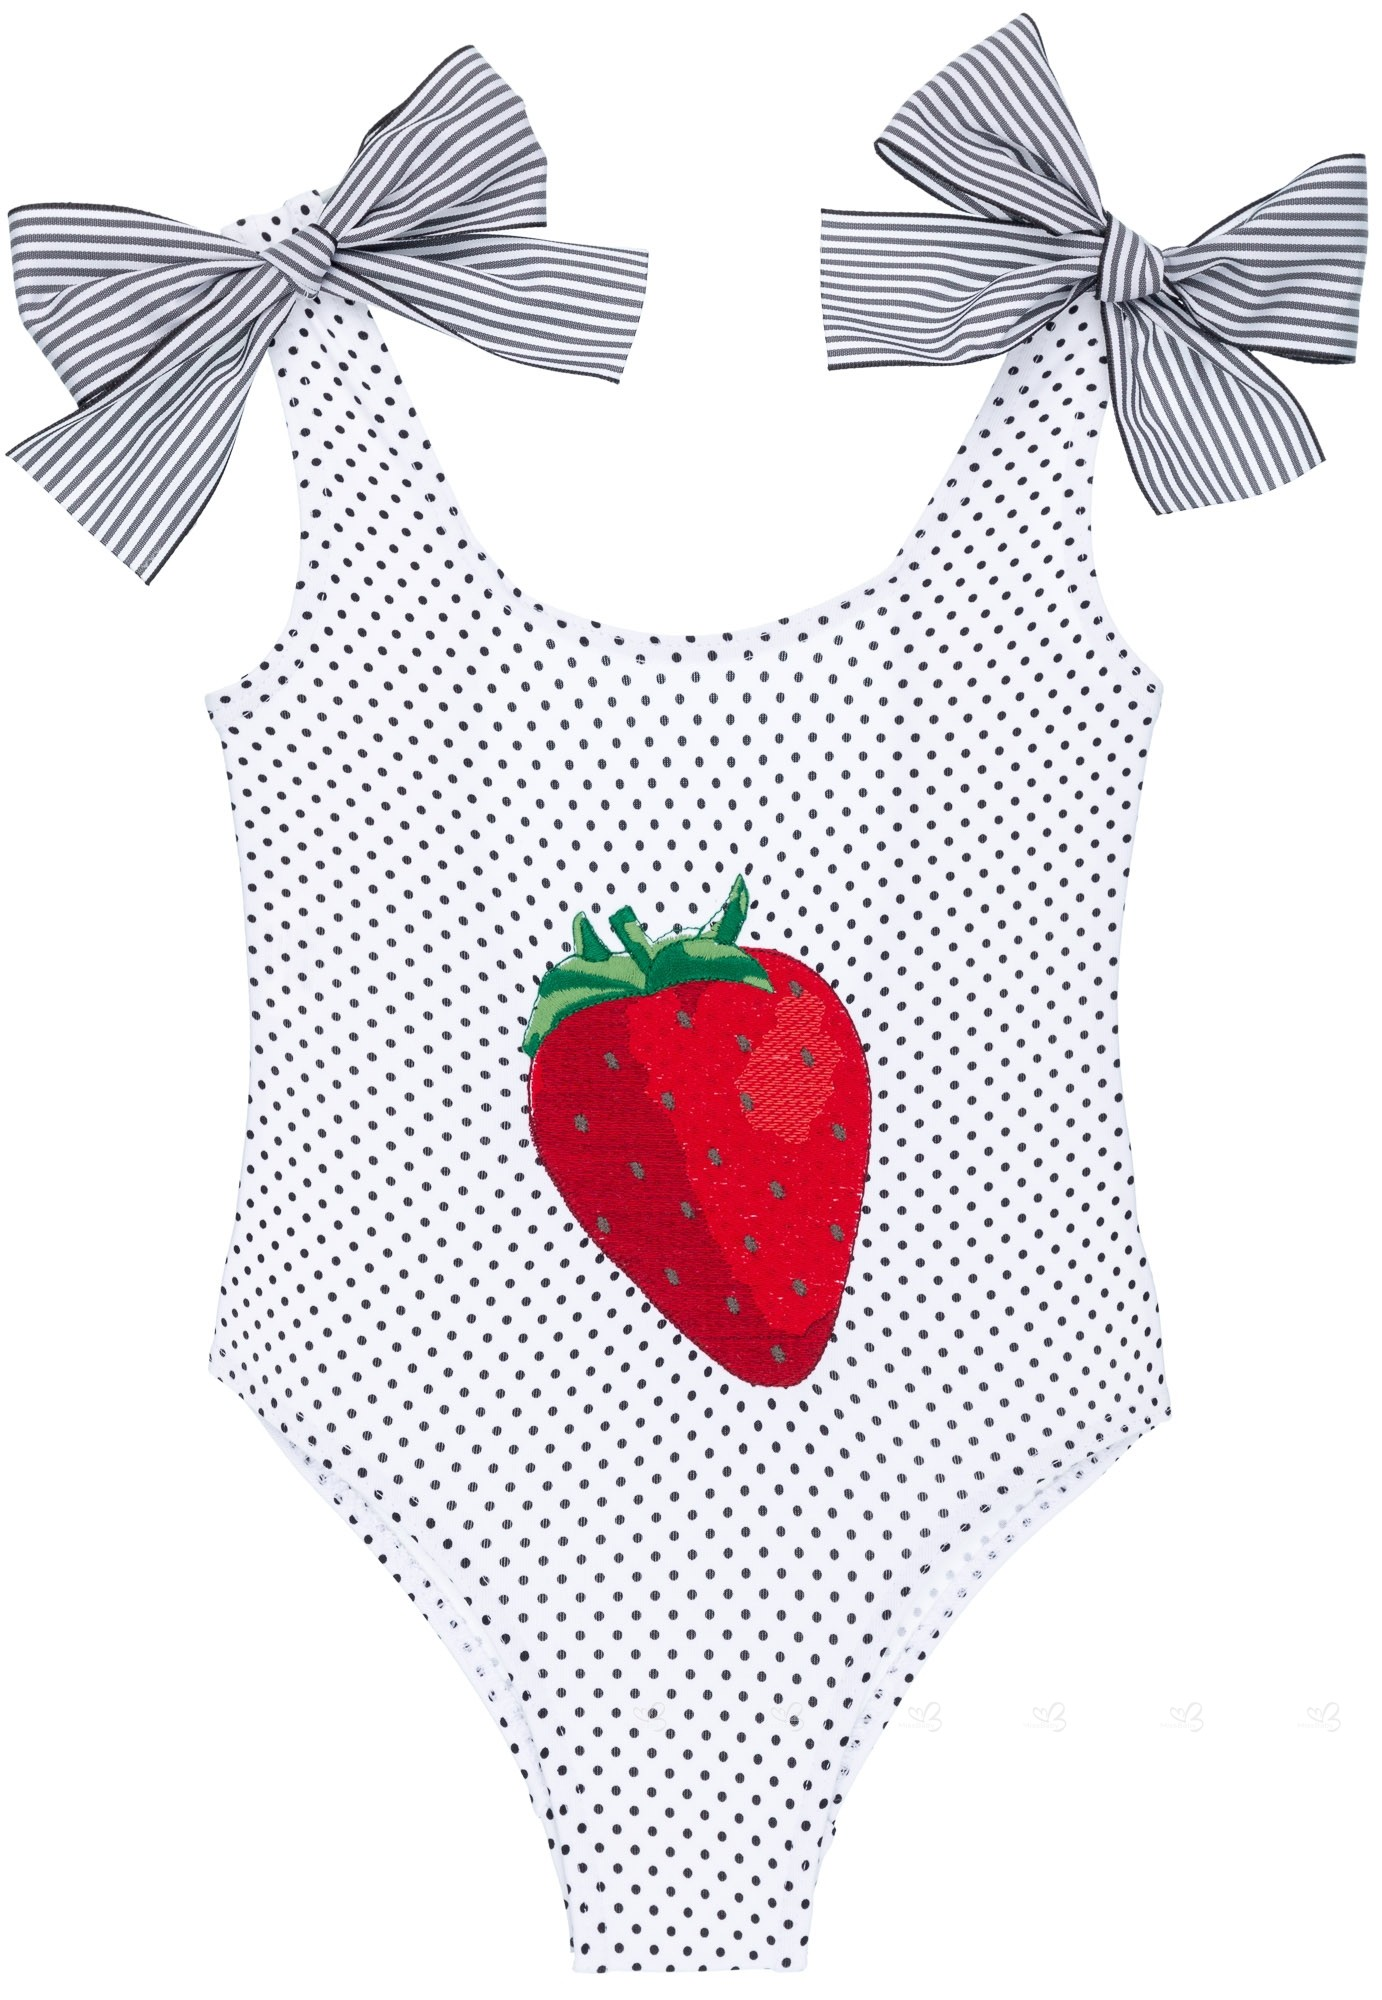 c387bdf56 Rochy Girls Black Polka Dot Swimsuit with Red Embroidered Strawberry ...